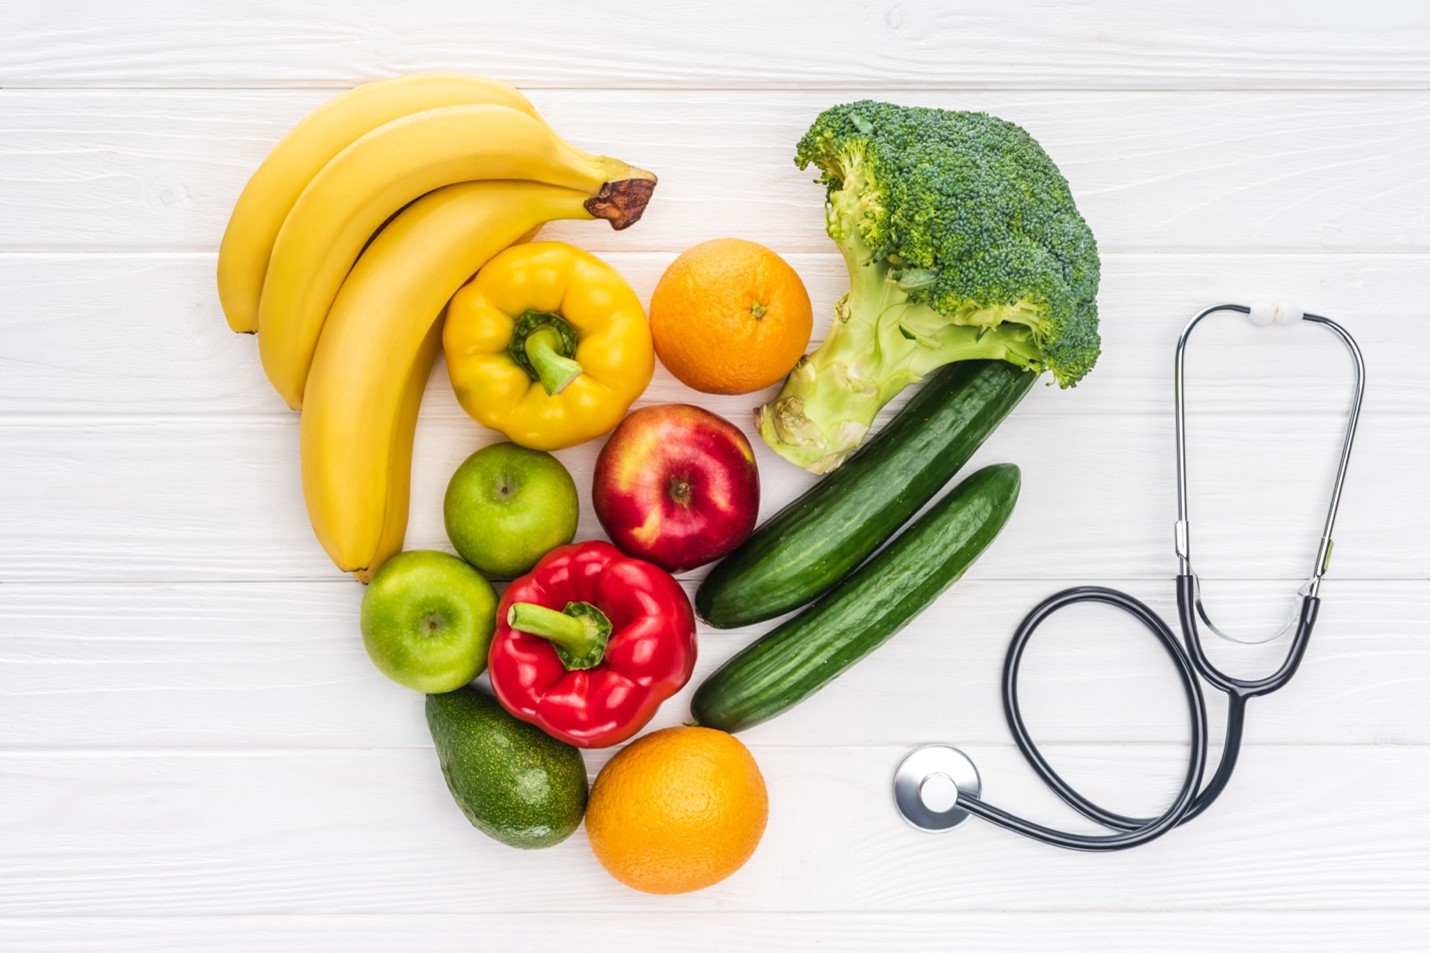 Fruits, vegetables and a stethoscope on a table